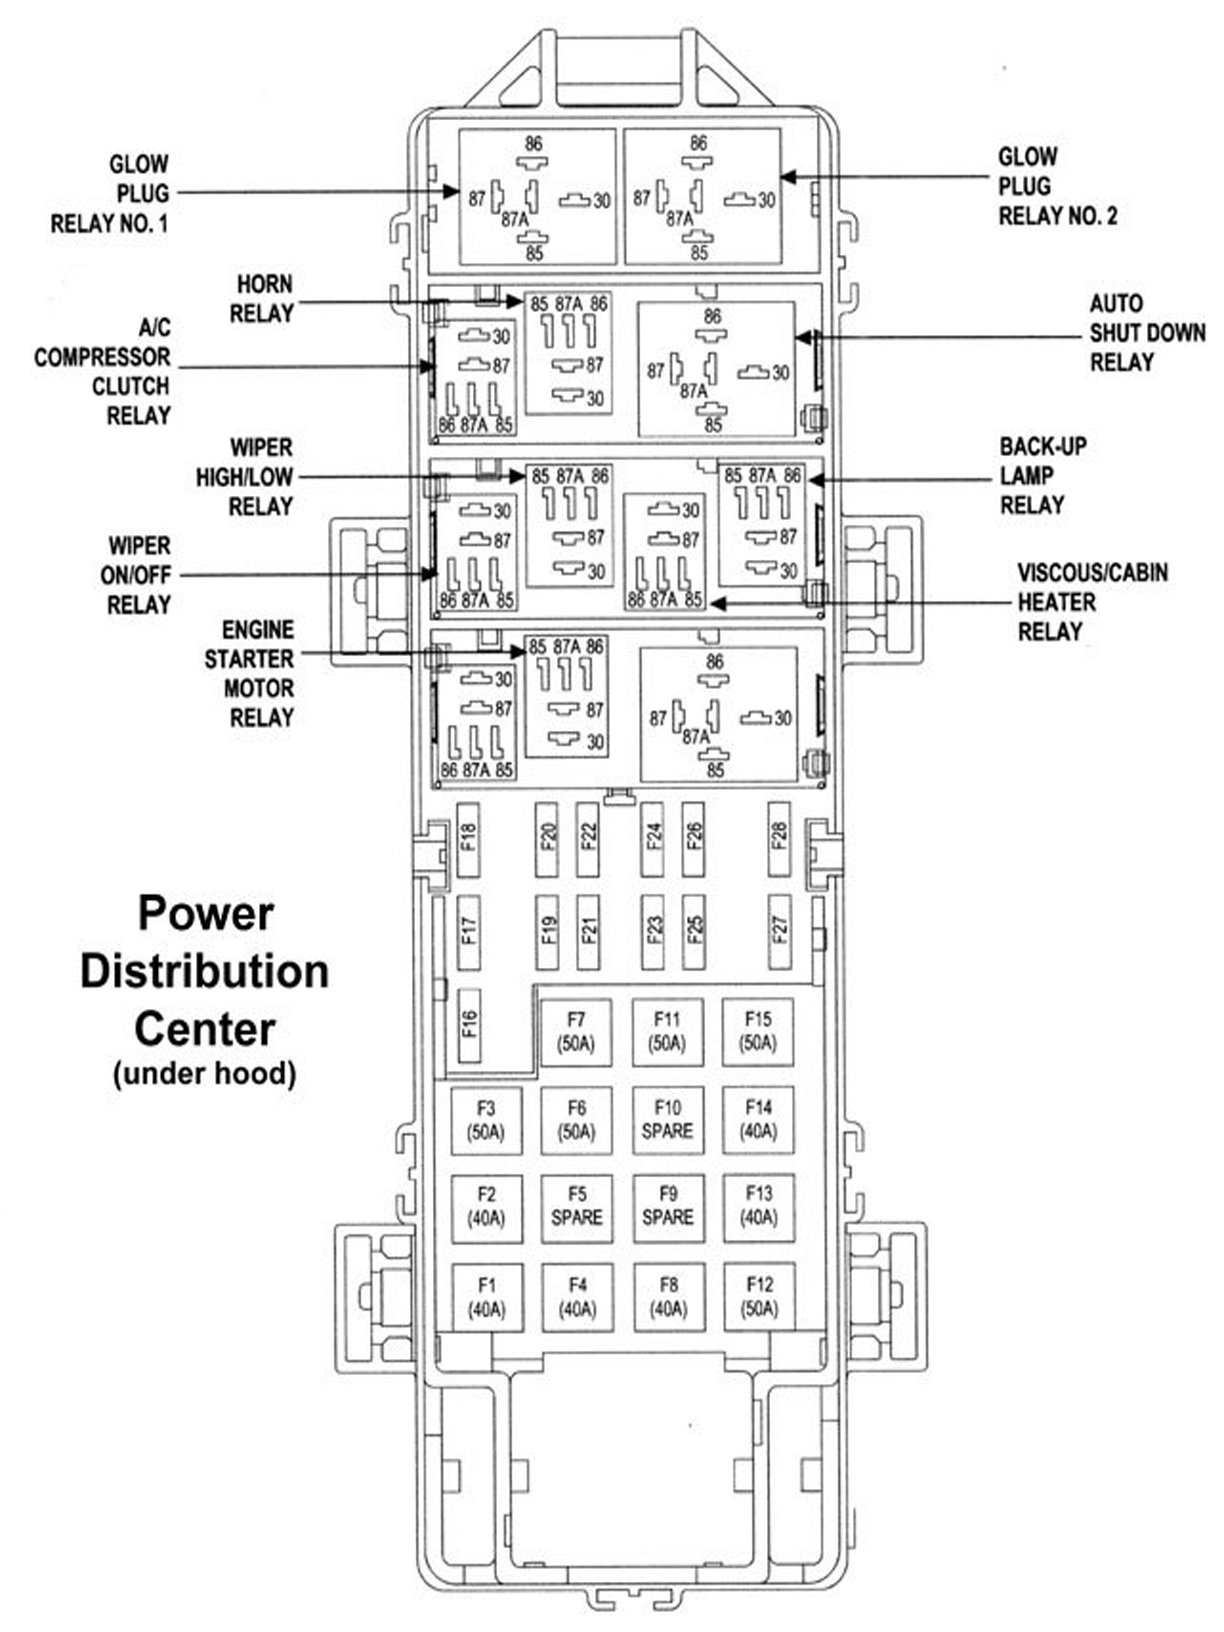 Ford Truck Vin Number Location